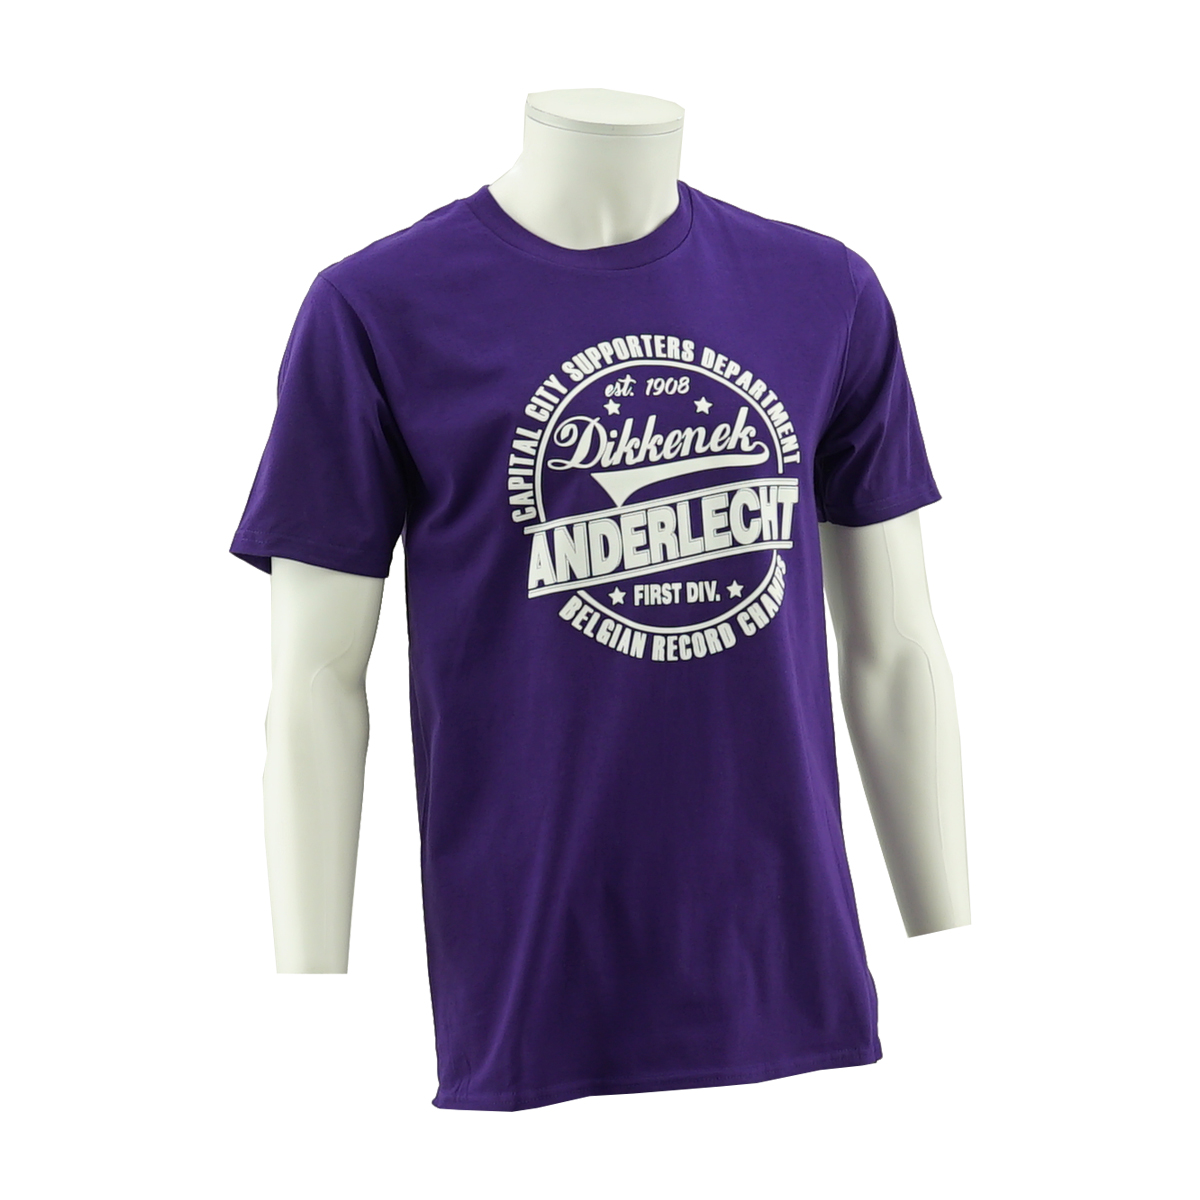 RSCA T-Shirt Mauff Record Champ